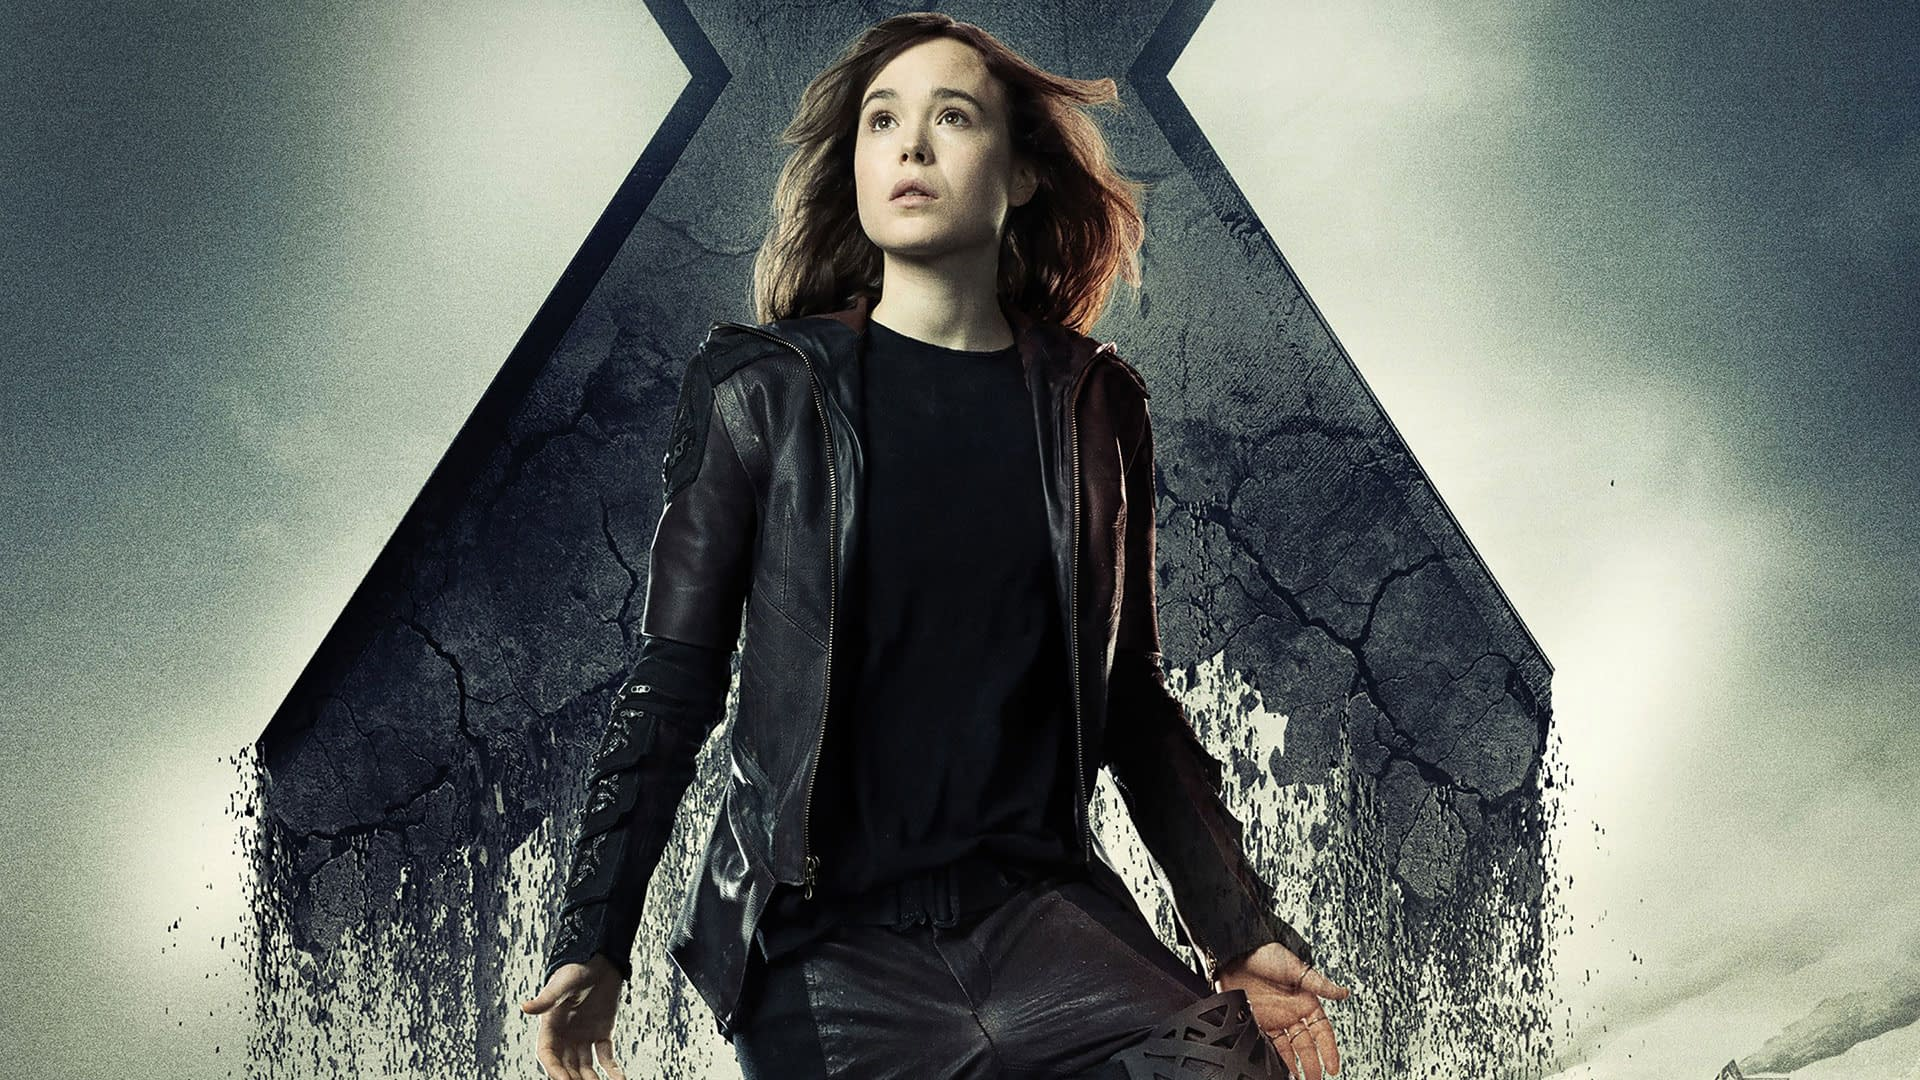 Tim Miller Doesn't Think His Kitty Pryde Movie is Going to Happen